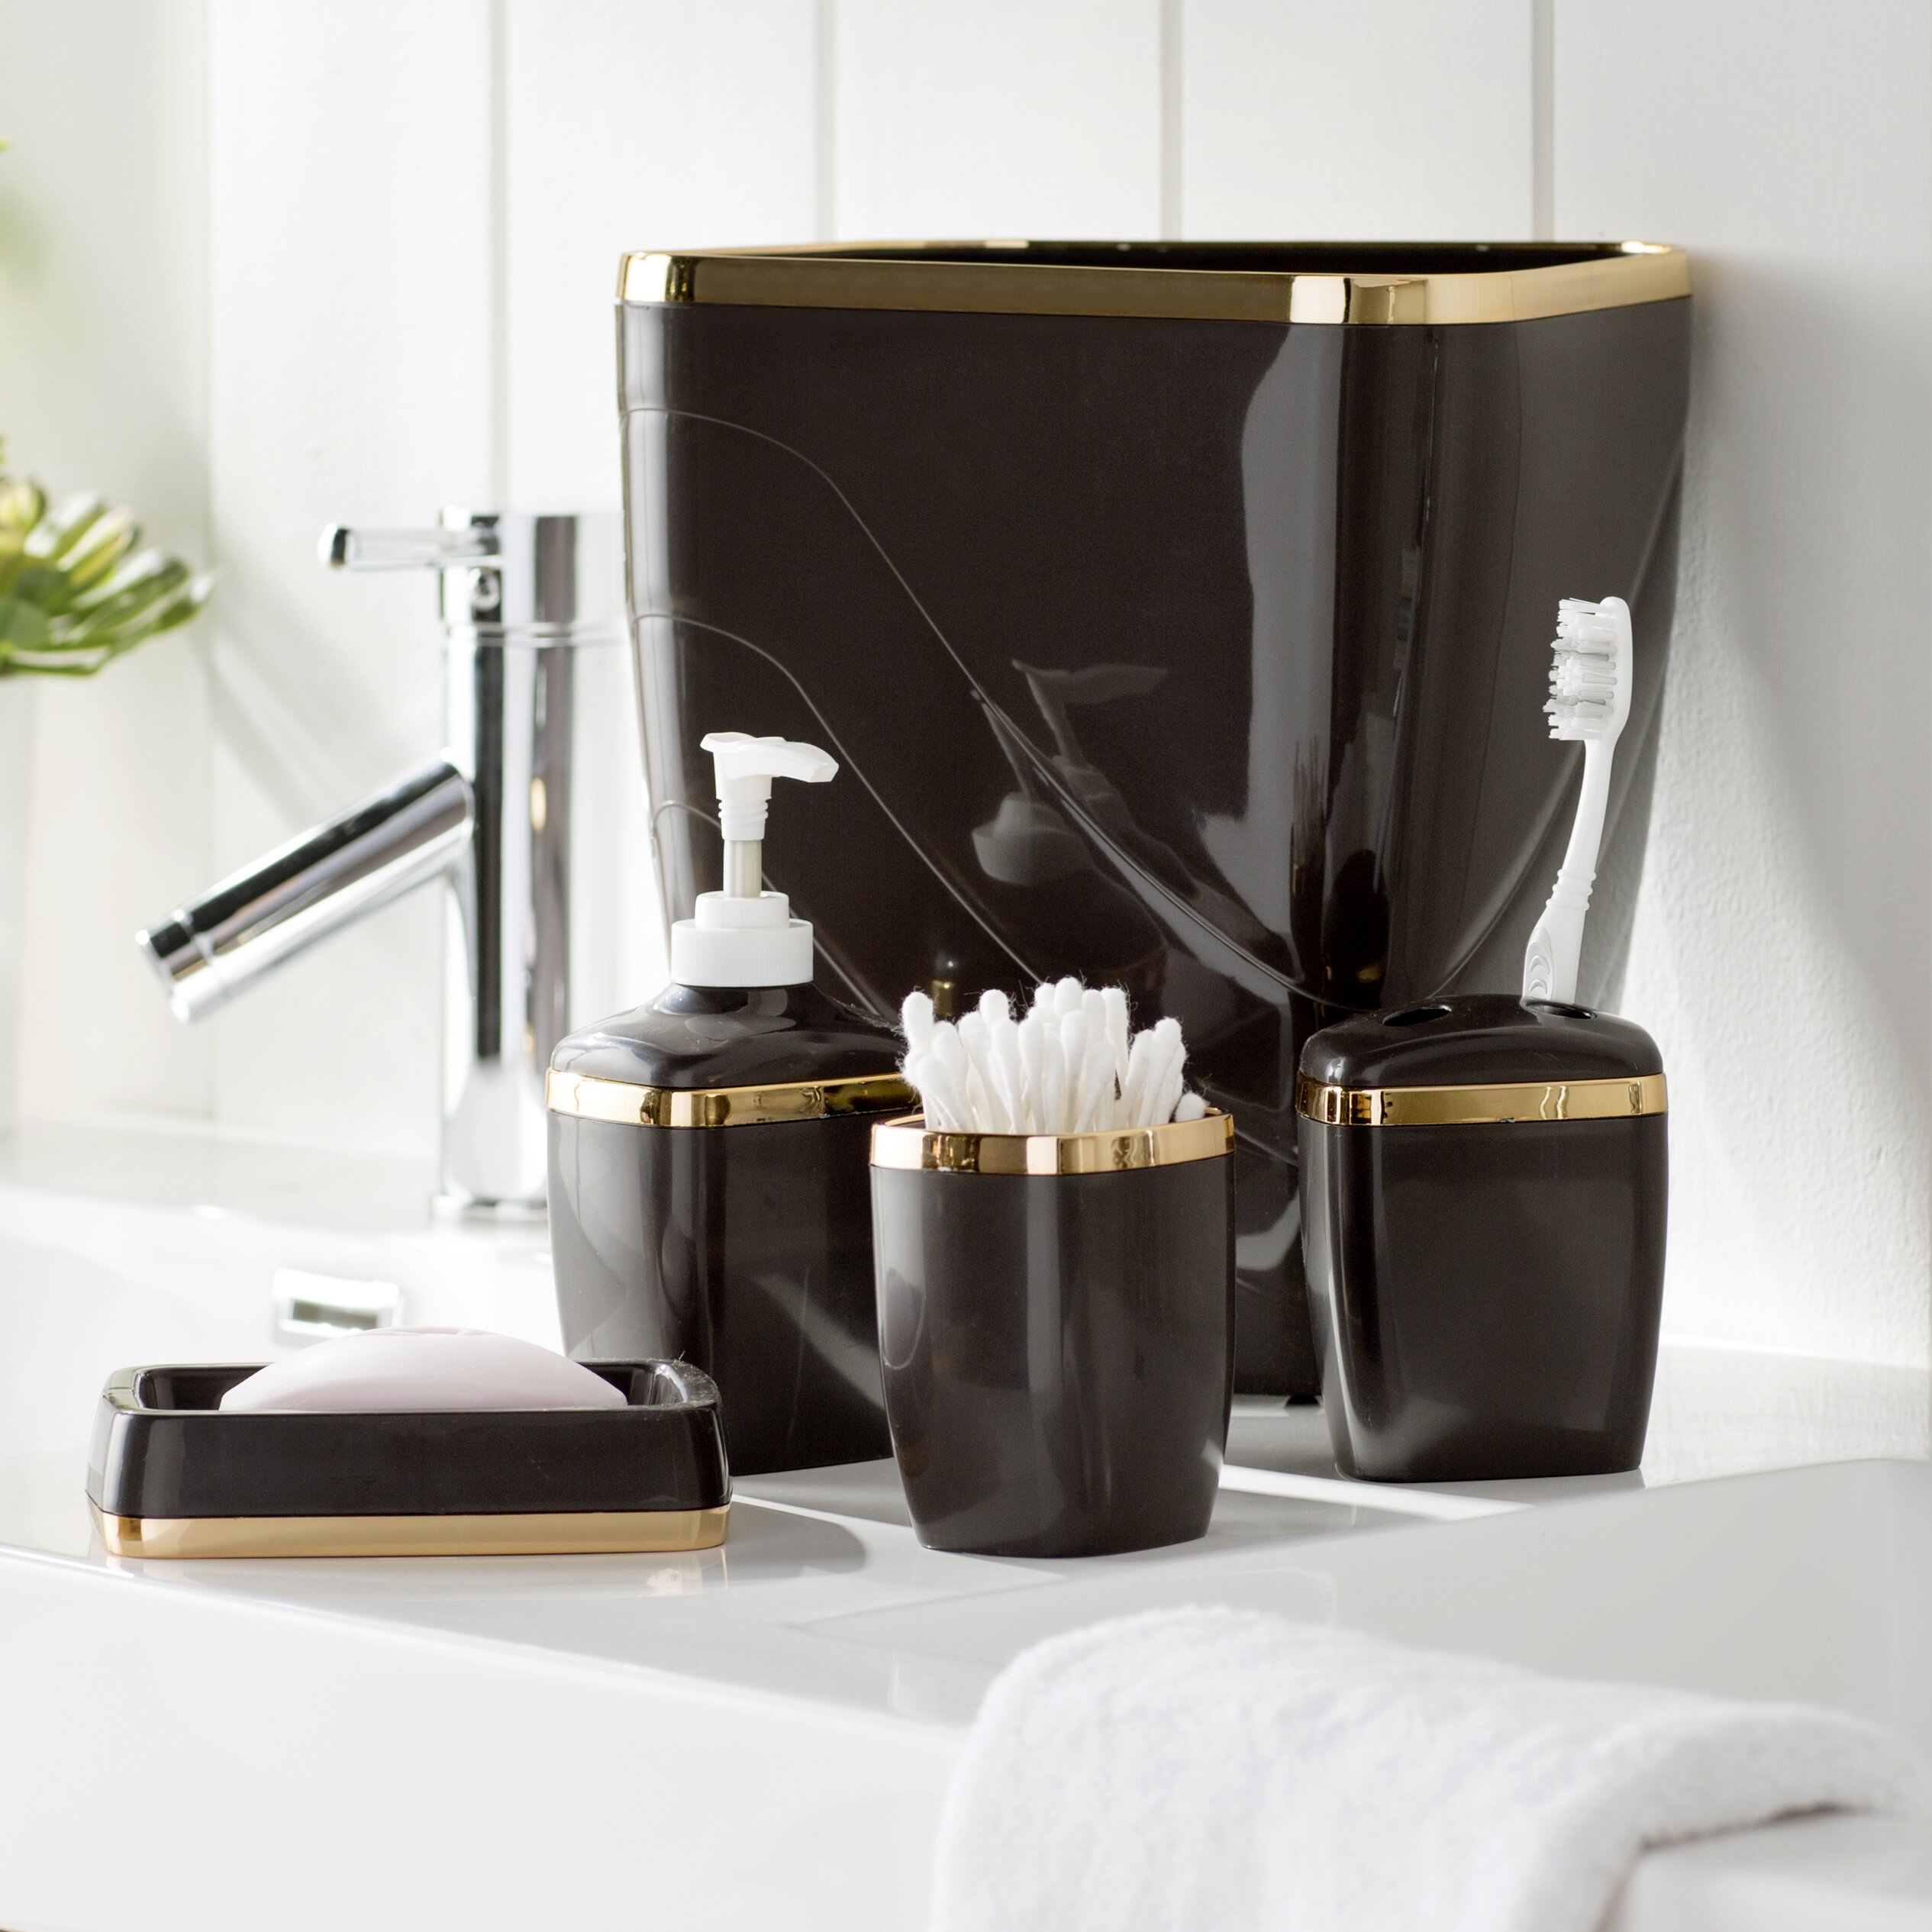 Shower Bathroom Sets: Wayfair Basics Wayfair Basics 5-Piece Bathroom Accessory